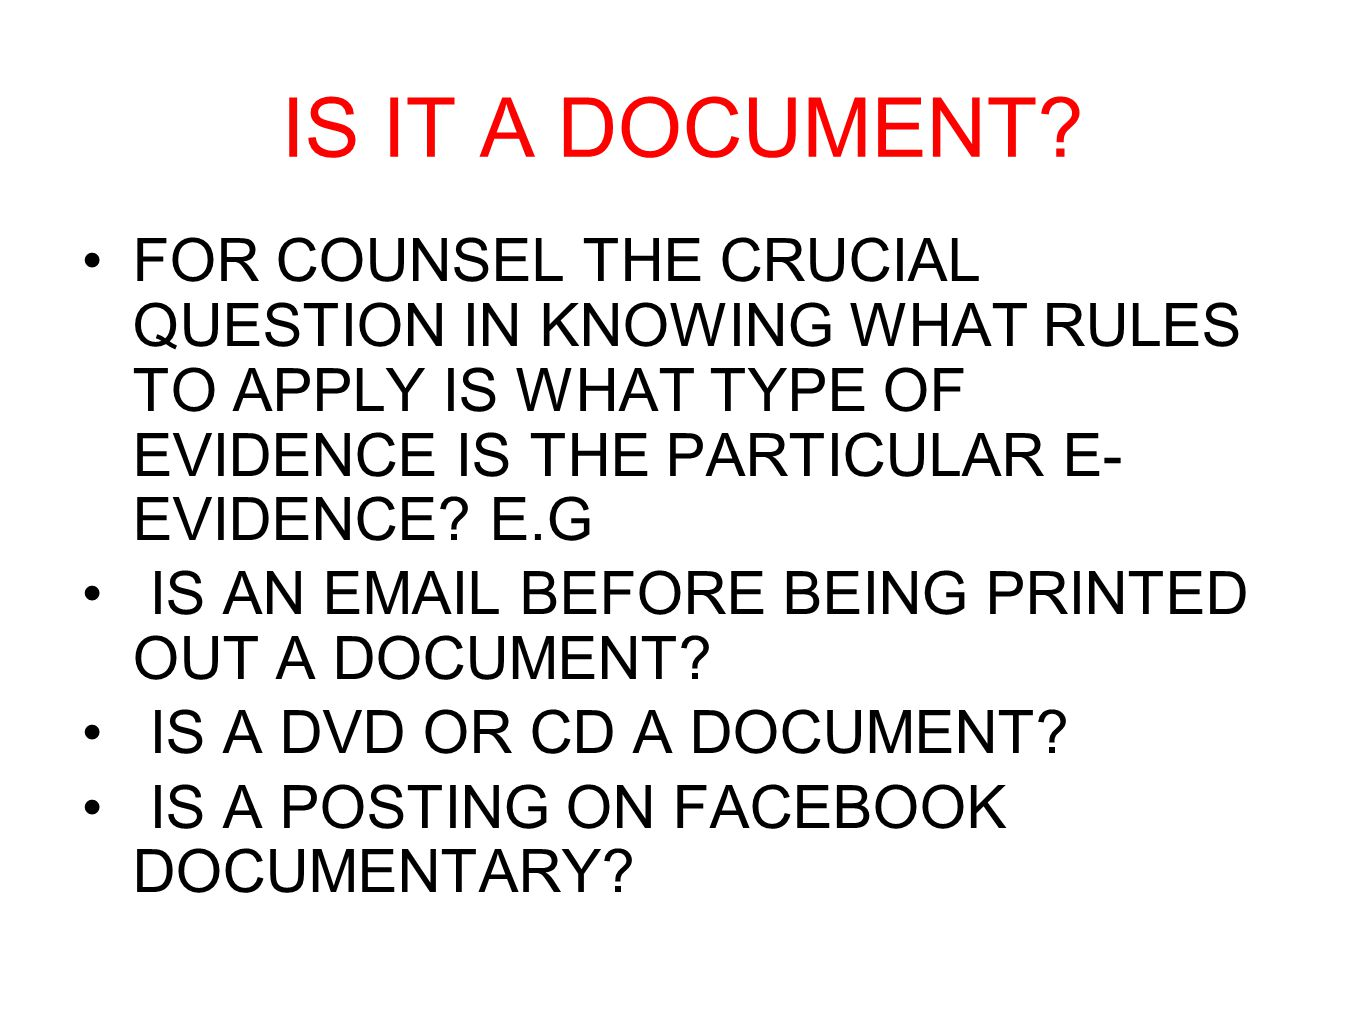 IS IT A DOCUMENT FOR COUNSEL THE CRUCIAL QUESTION IN KNOWING WHAT RULES TO APPLY IS WHAT TYPE OF EVIDENCE IS THE PARTICULAR E- EVIDENCE E.G.